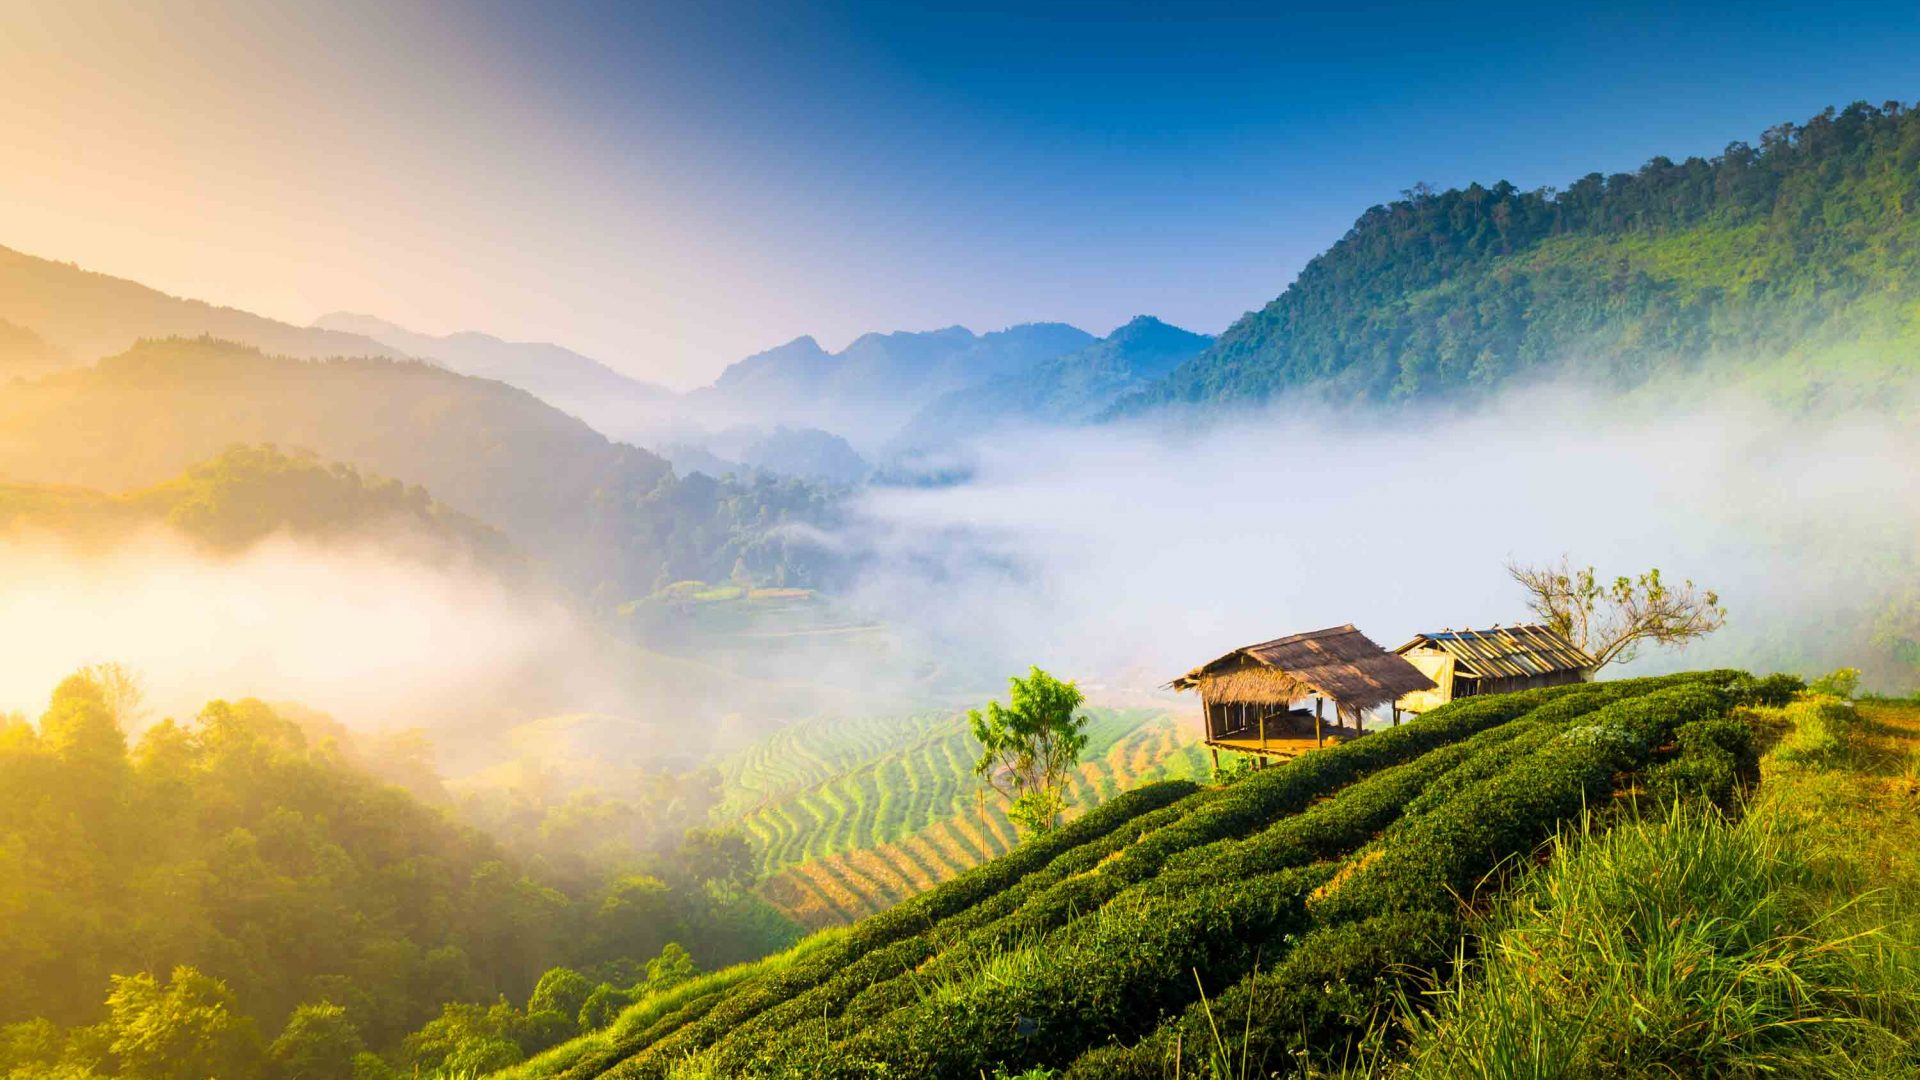 Beautiful sunshine and a misty morning in the mountains of Chiang Mai in the north of Thailand.